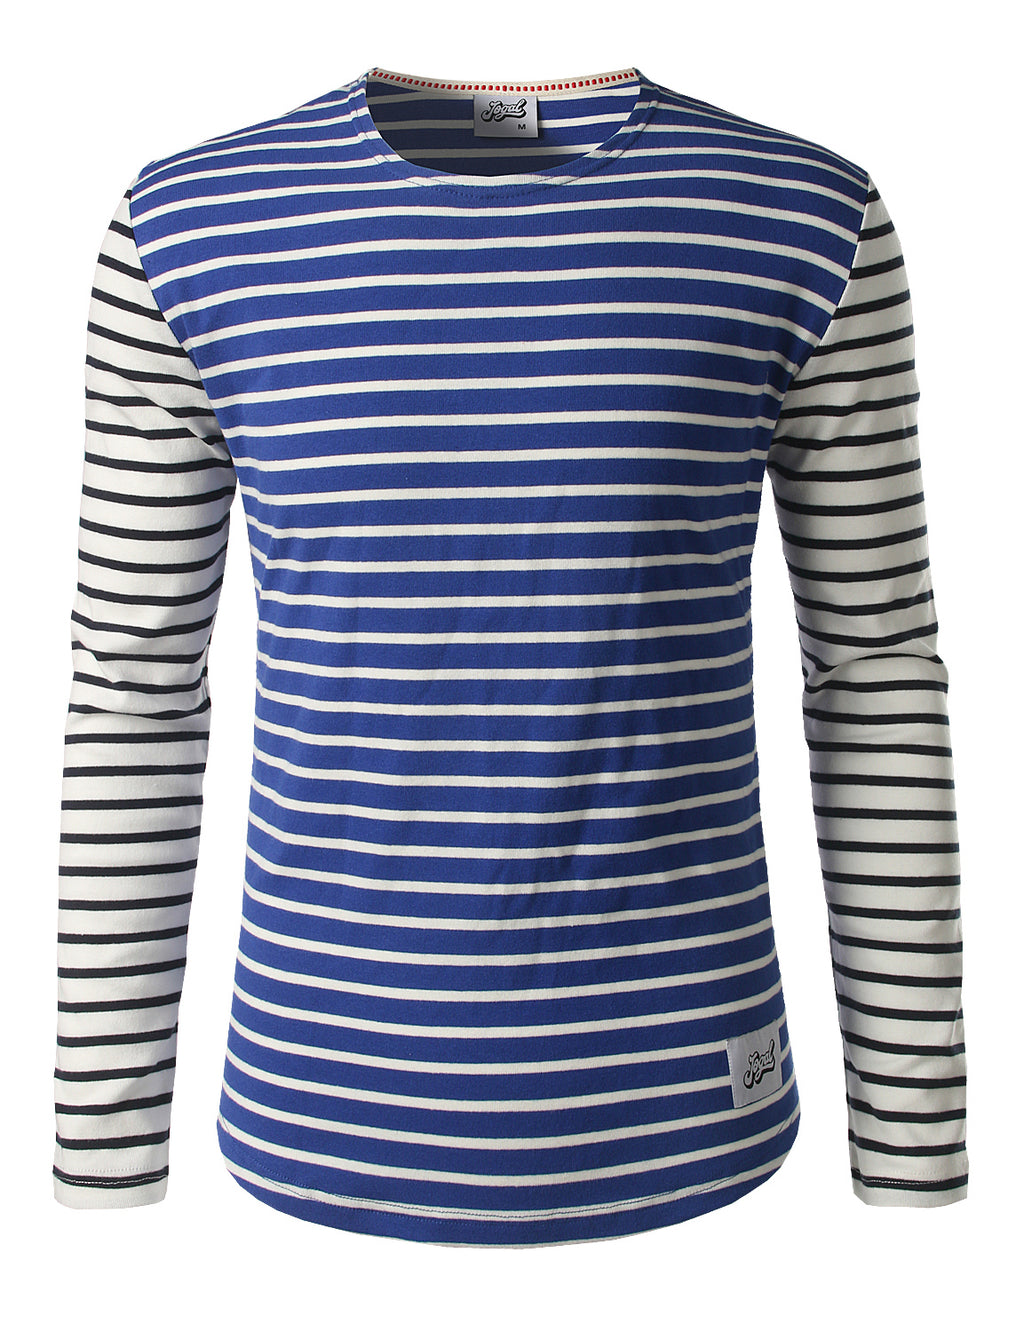 Jogal Mens Striped Shirt Long Sleeve Casual  T-Shirt